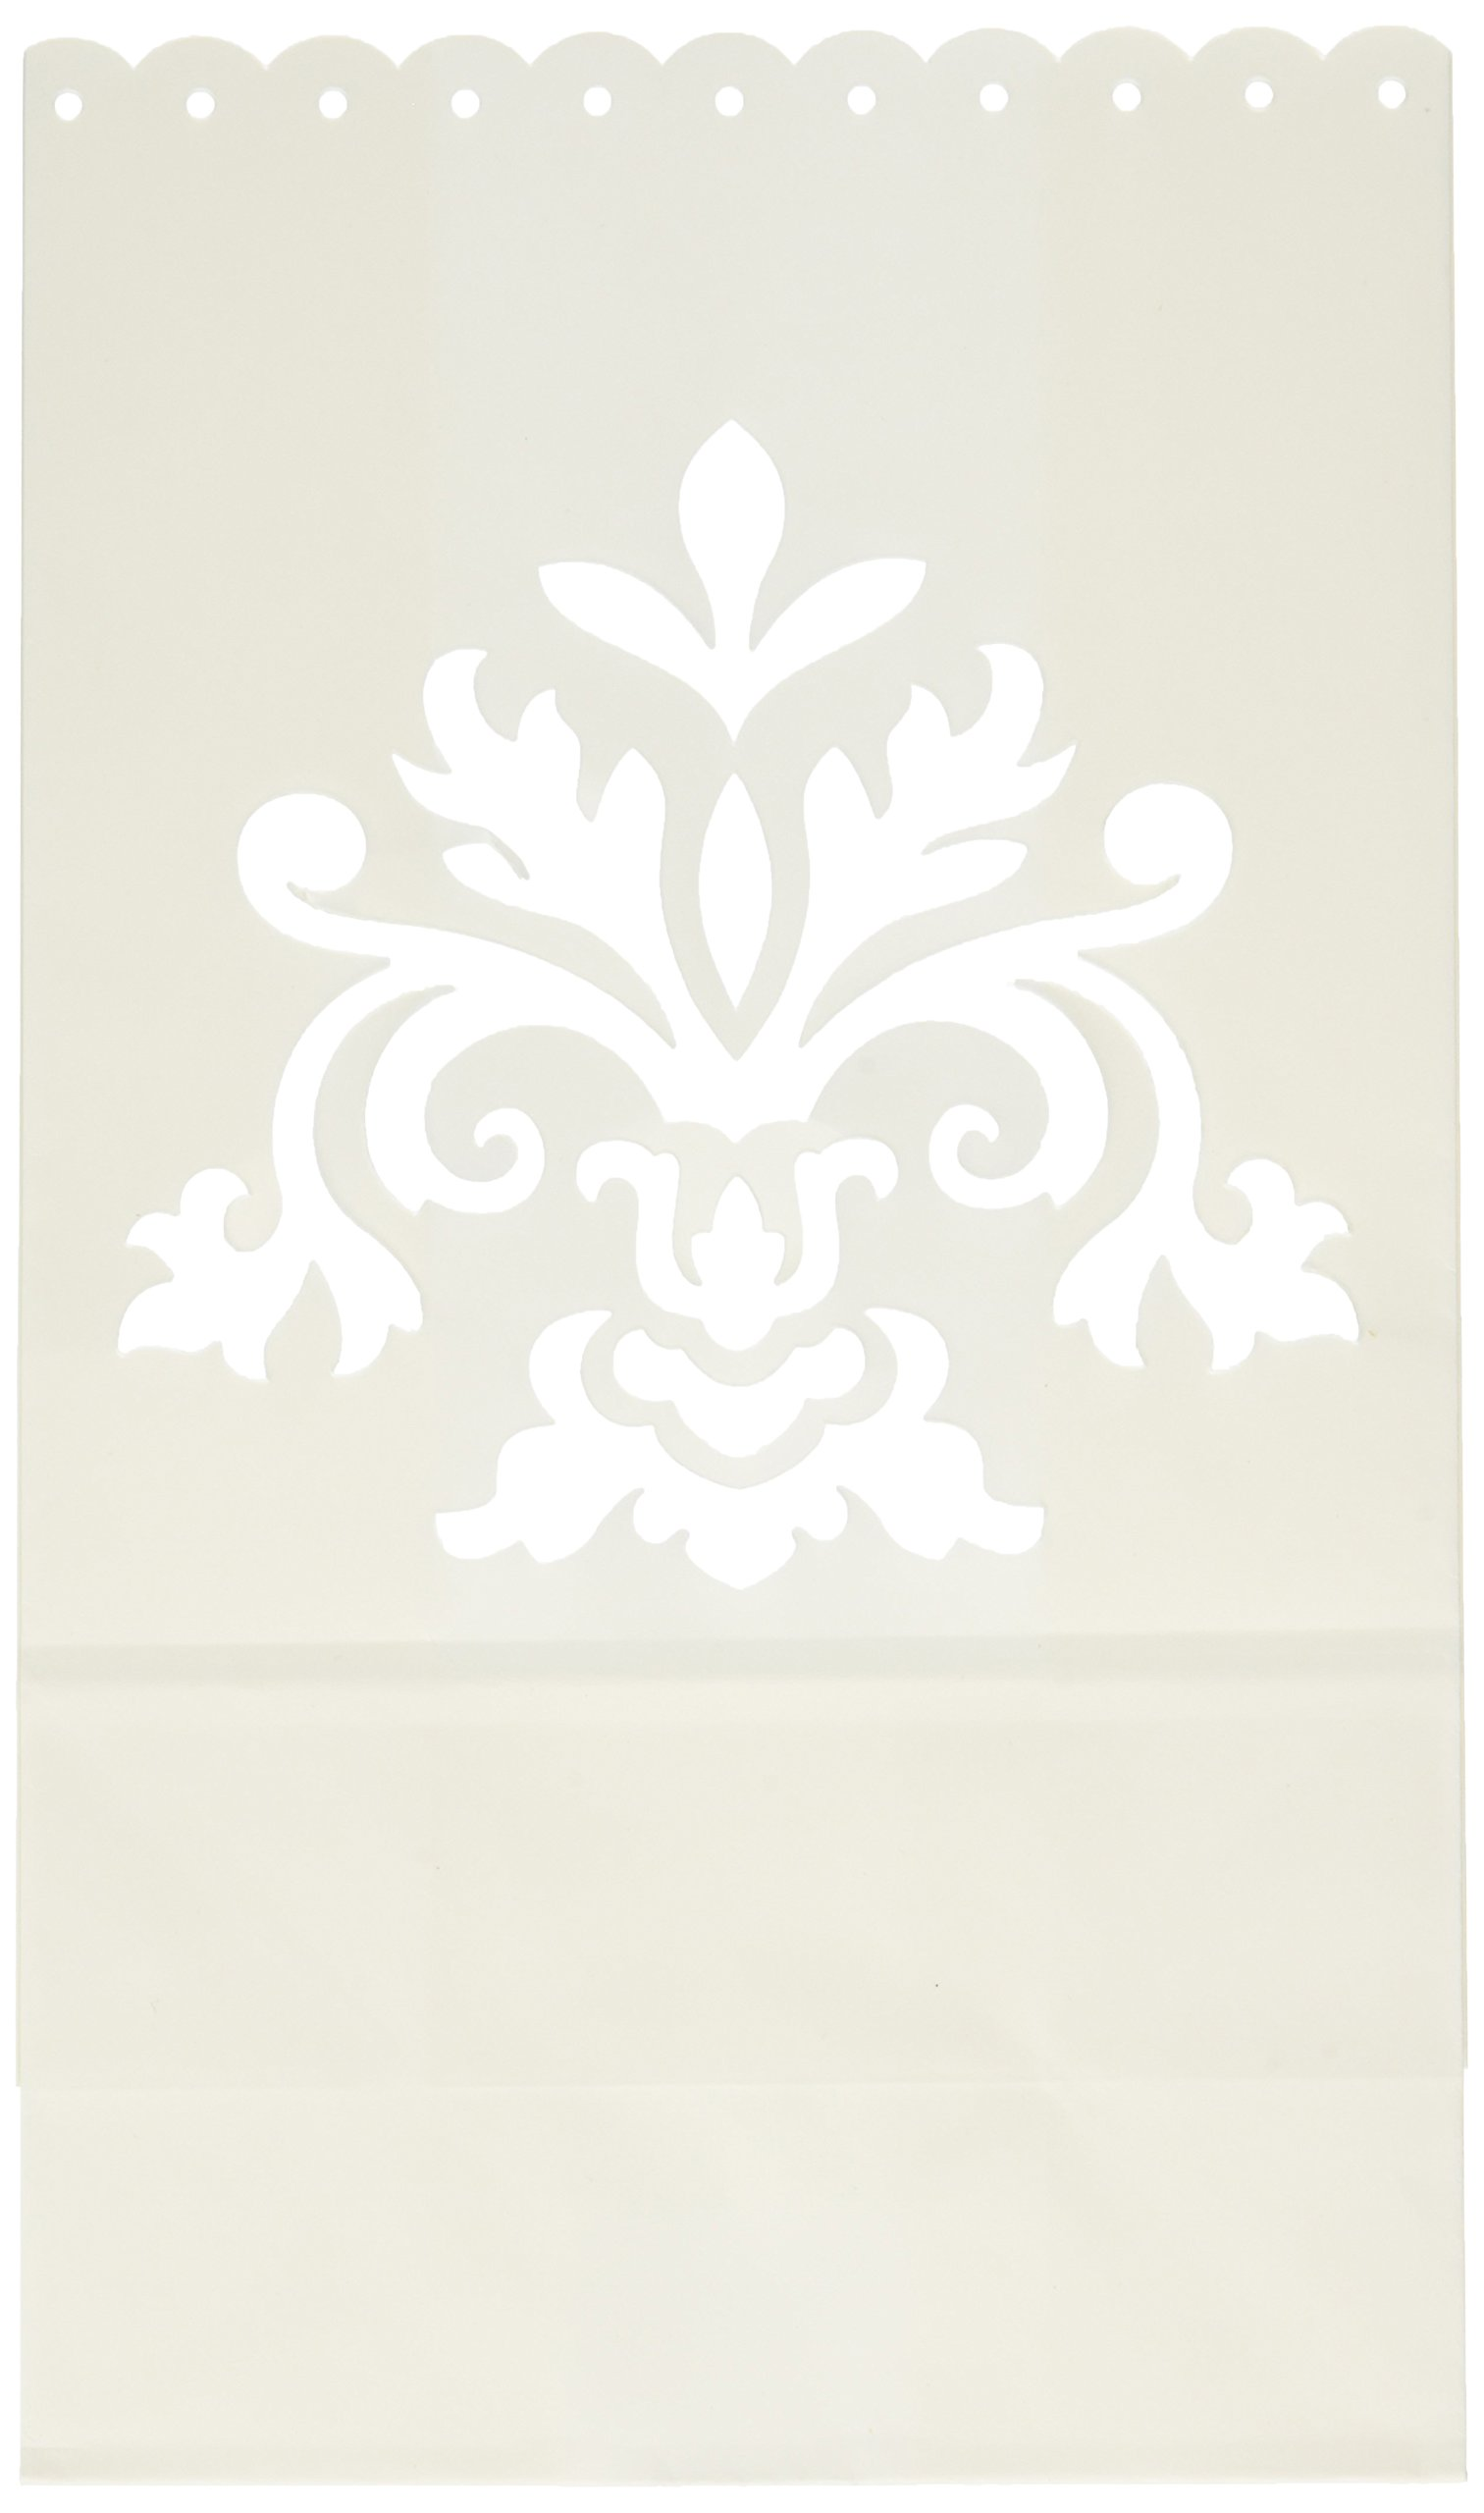 Amscan 379276 Bridal Paper Bag Luminaries   Wedding and Engagement Party , 24ct by amscan